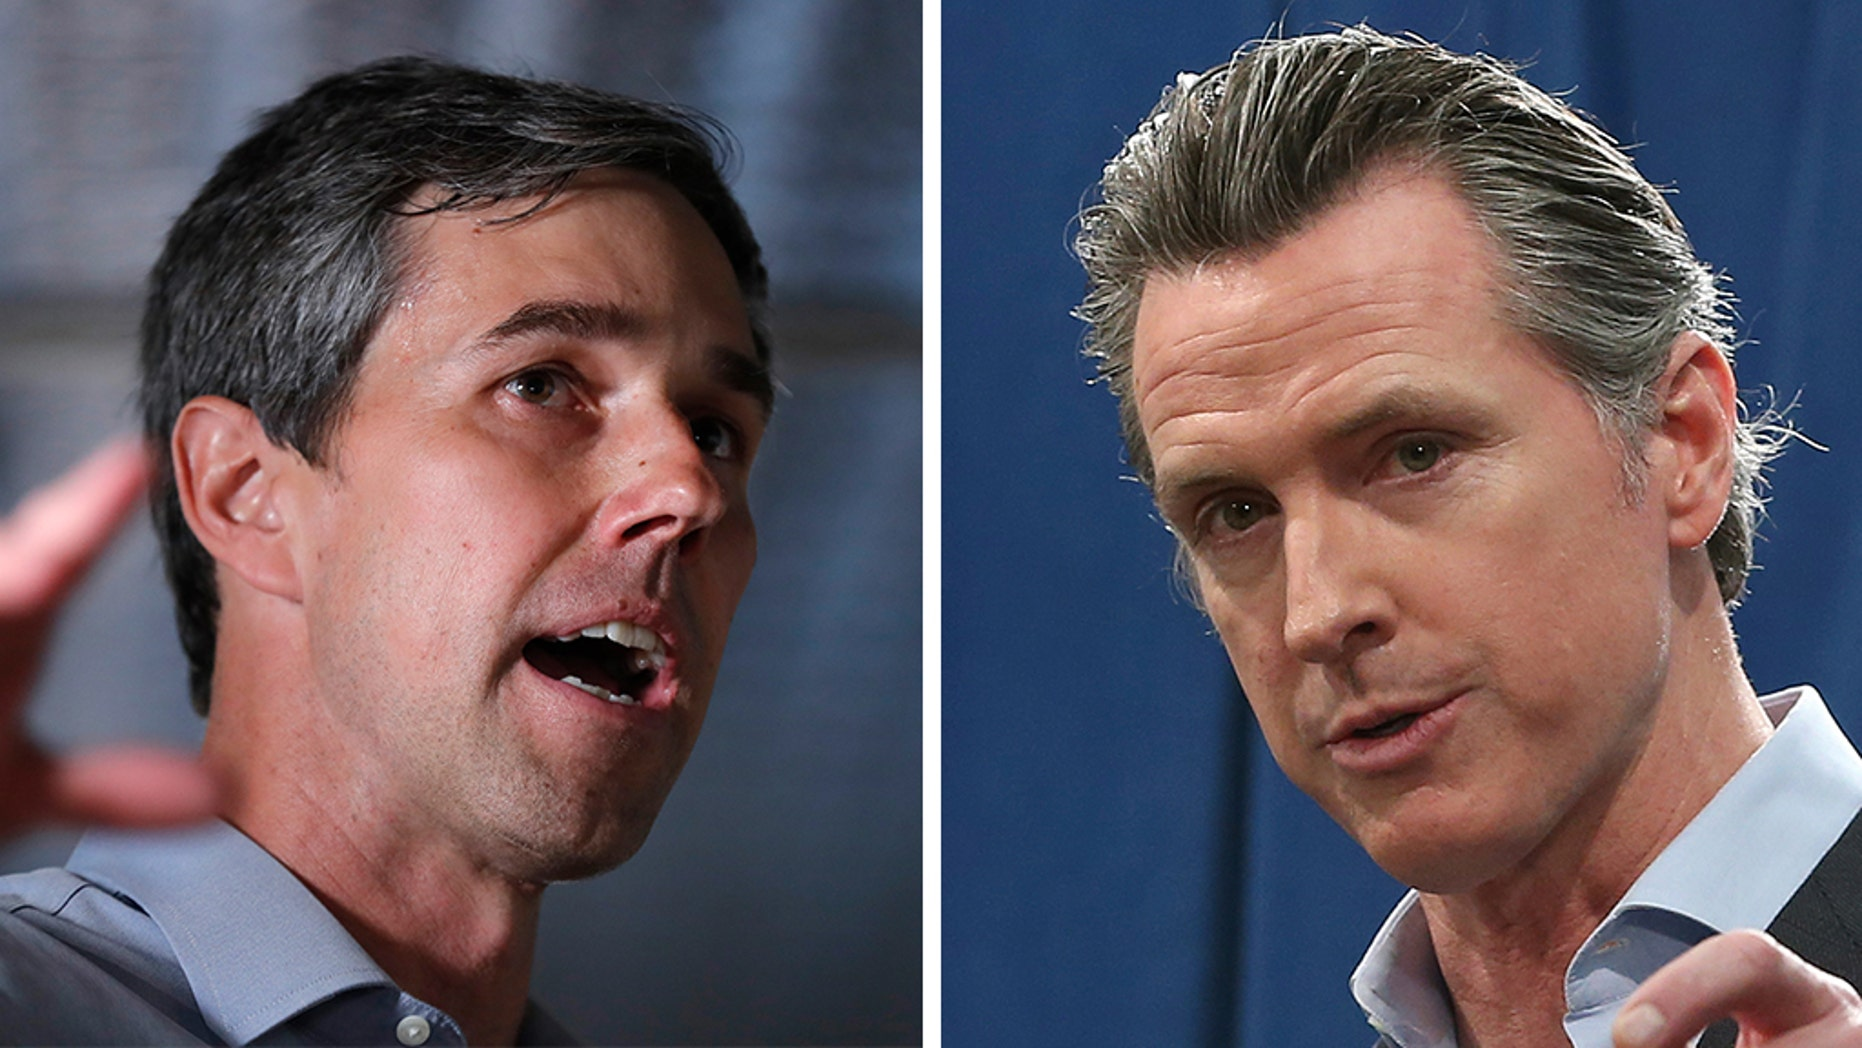 Democrat Beto O'Rourke jumps into 2020 presidential race